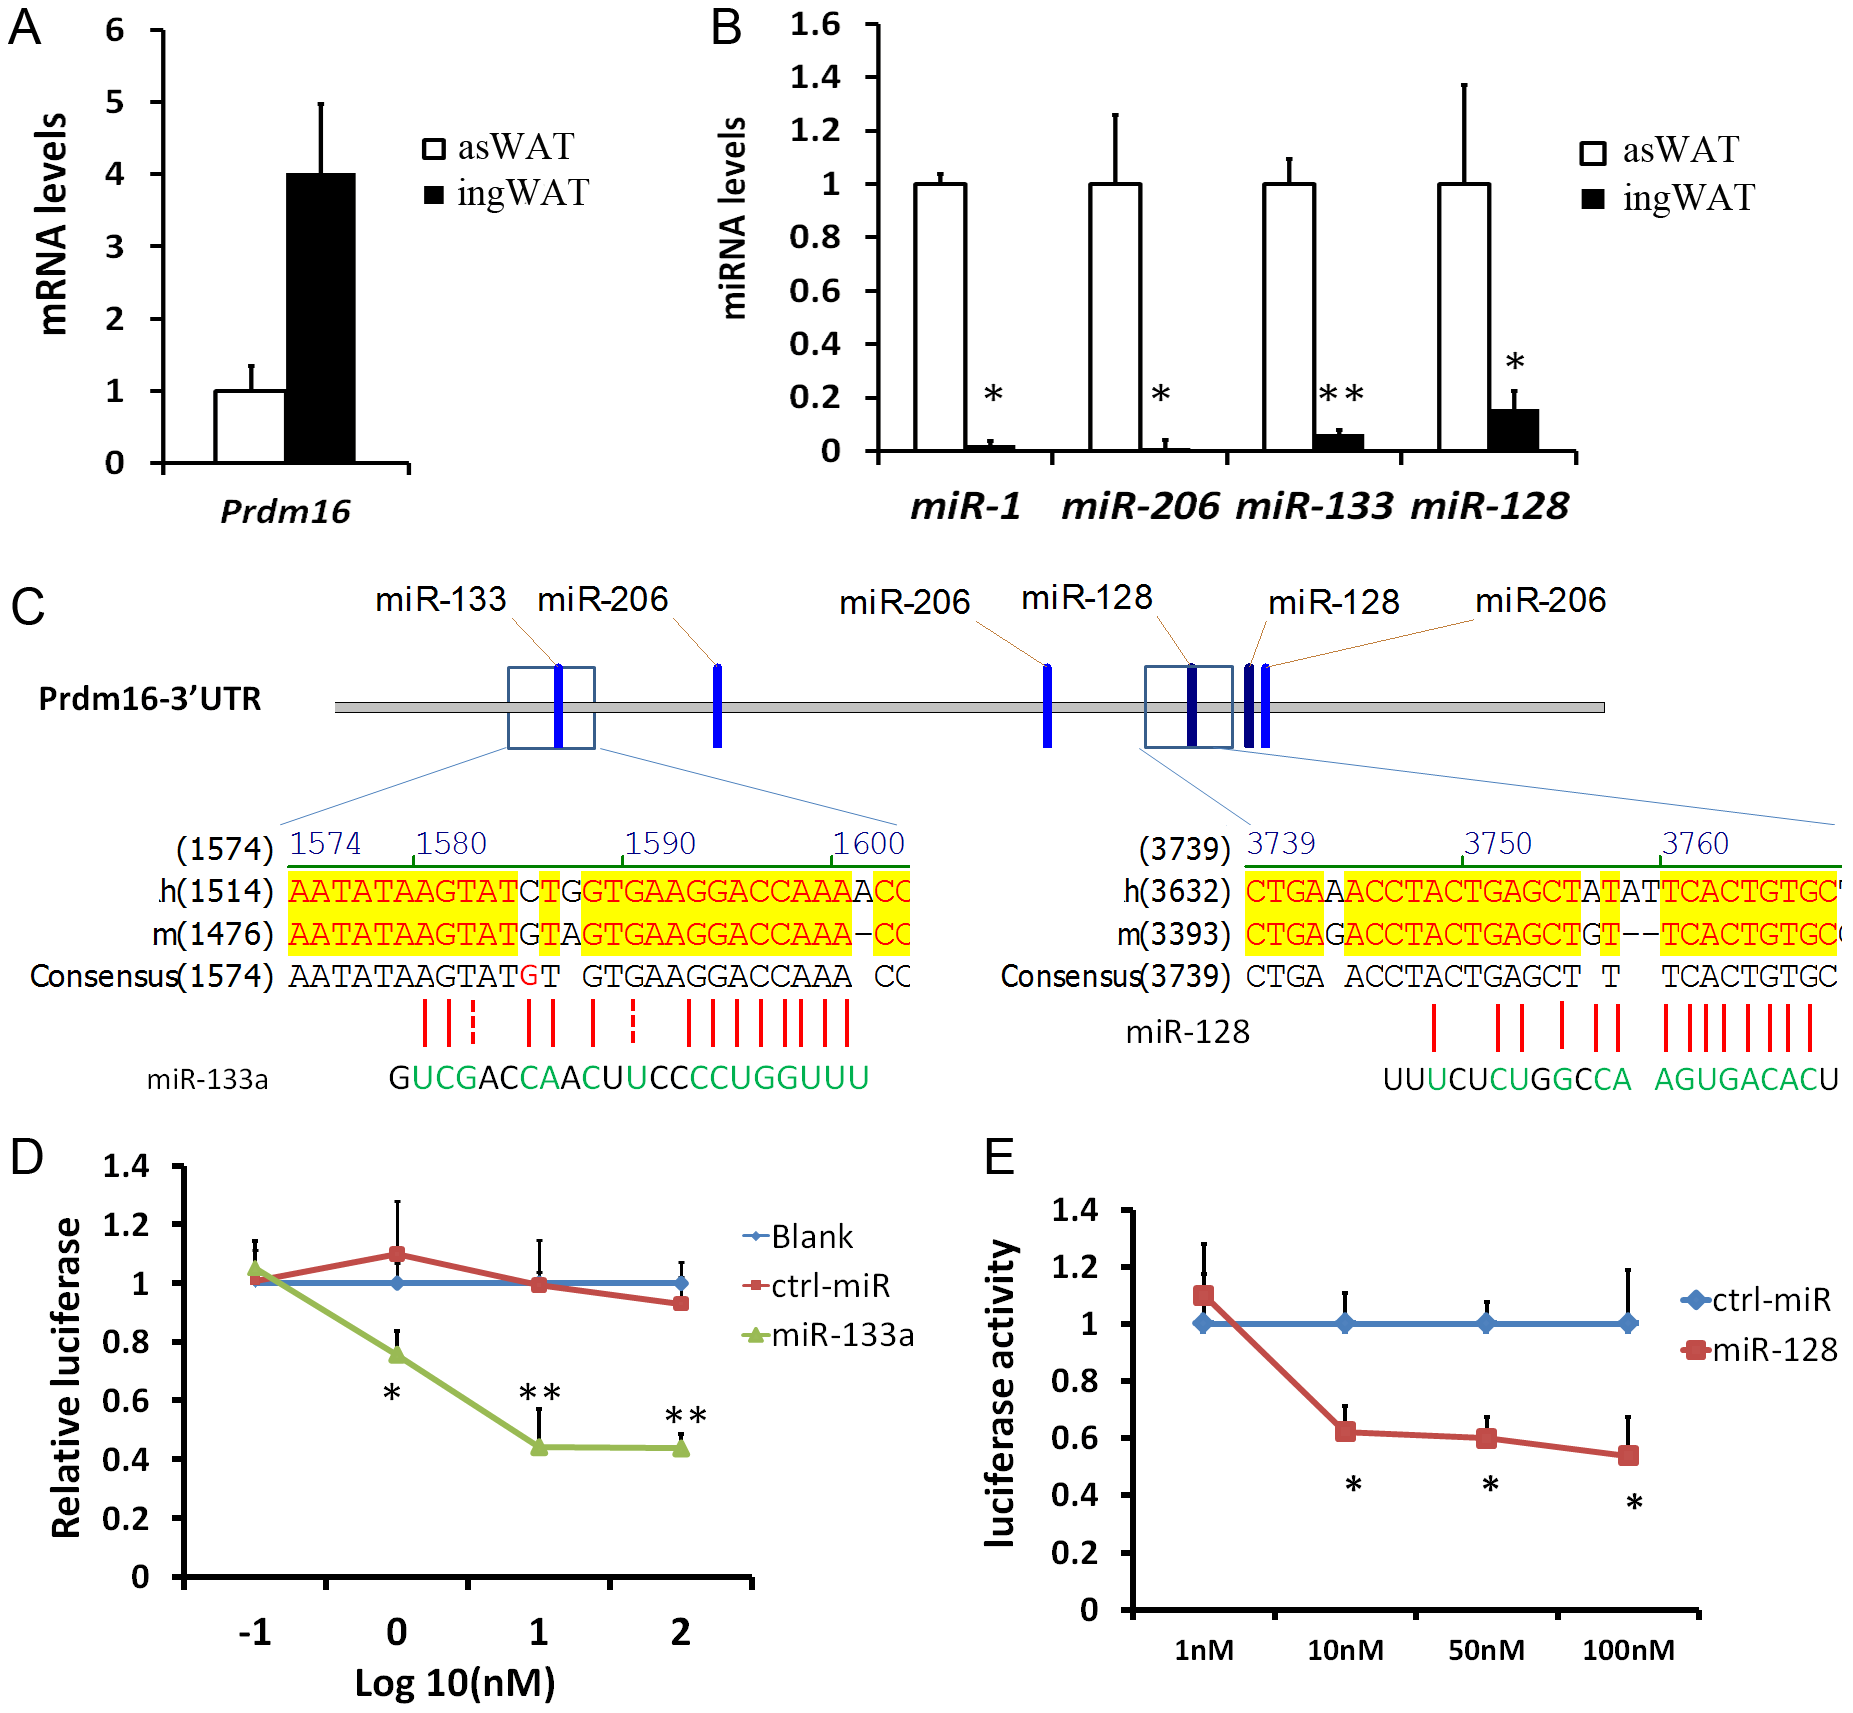 miR-133a and miR-128 target the 3′ UTR of Prdm16 in HEK293 cells.